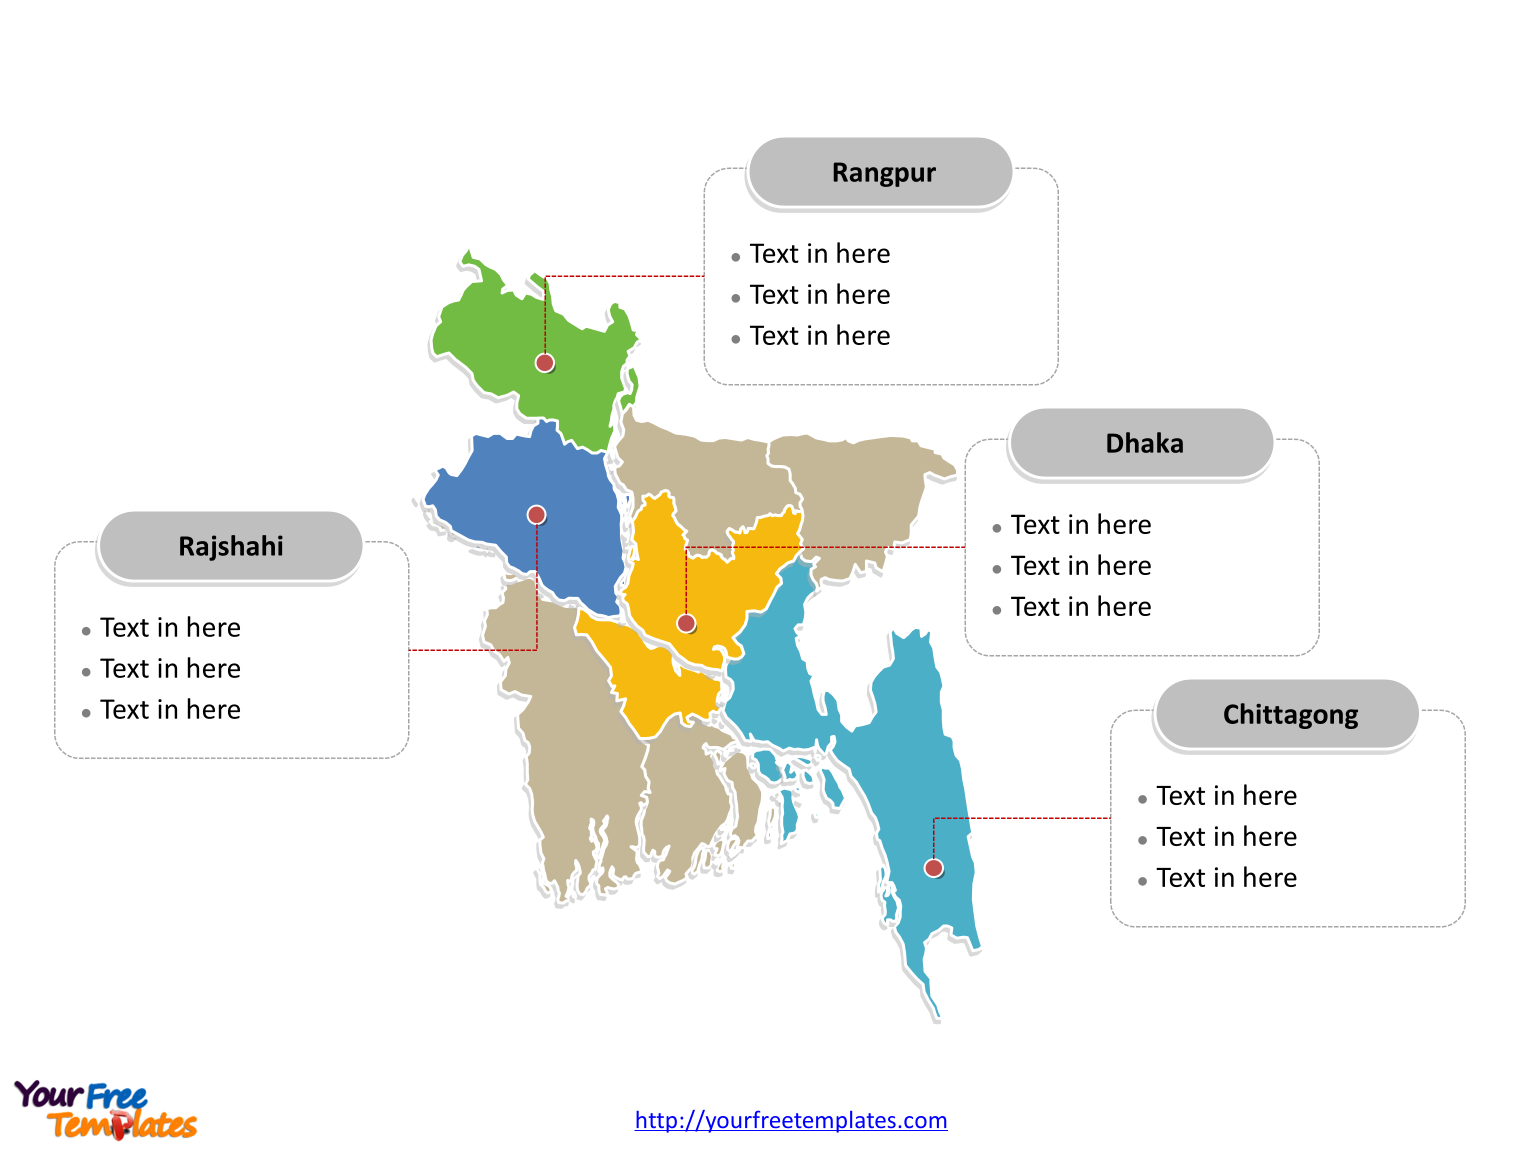 Bangladesh Outline map labeled with cities